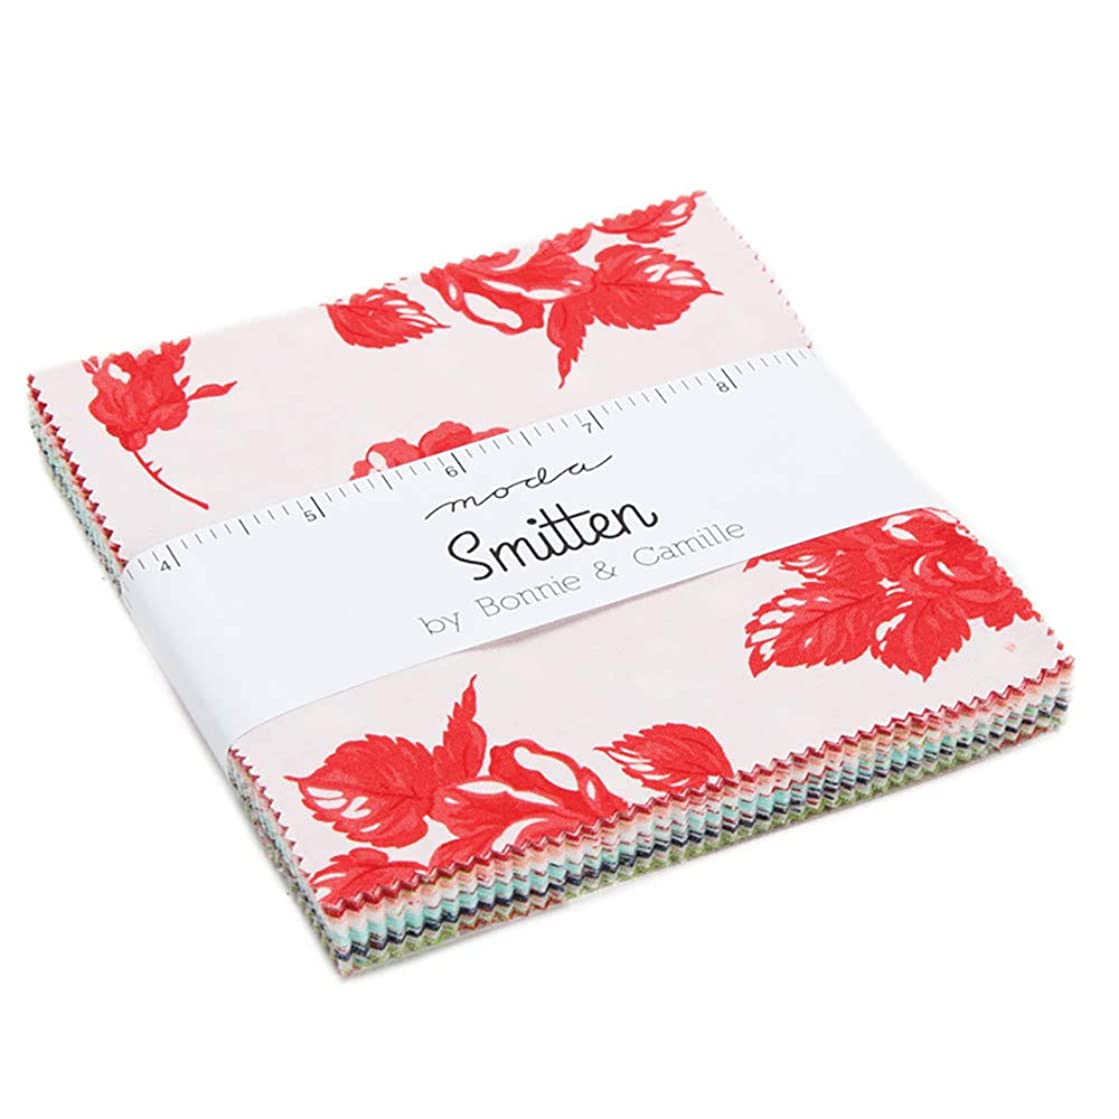 Smitten Charm Pack by Bonnie & Camille; 42-5 Inch Precut Fabric Quilt Squares